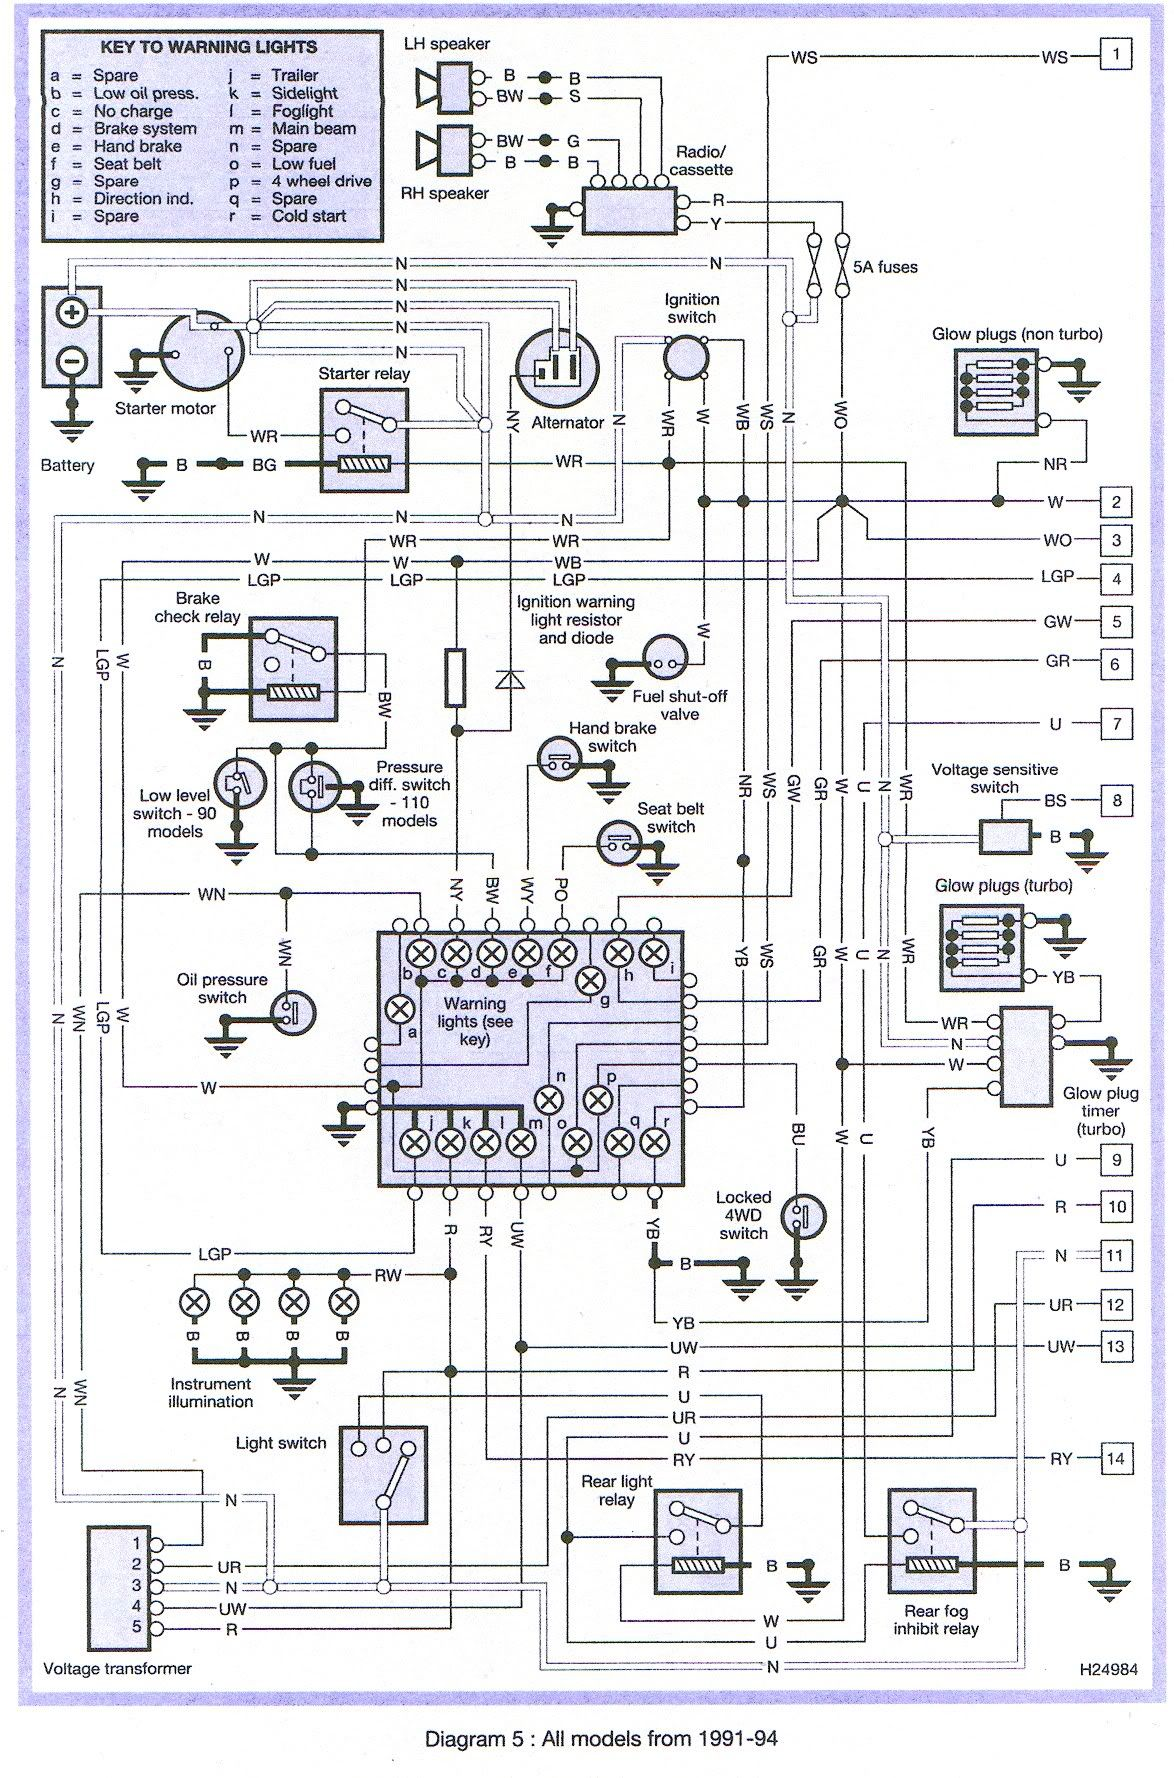 07629544bfff38ad2881b2c21312c6e6 land rover discovery wiring diagram manual repair with engine 300tdi discovery as10 wiring diagram at webbmarketing.co